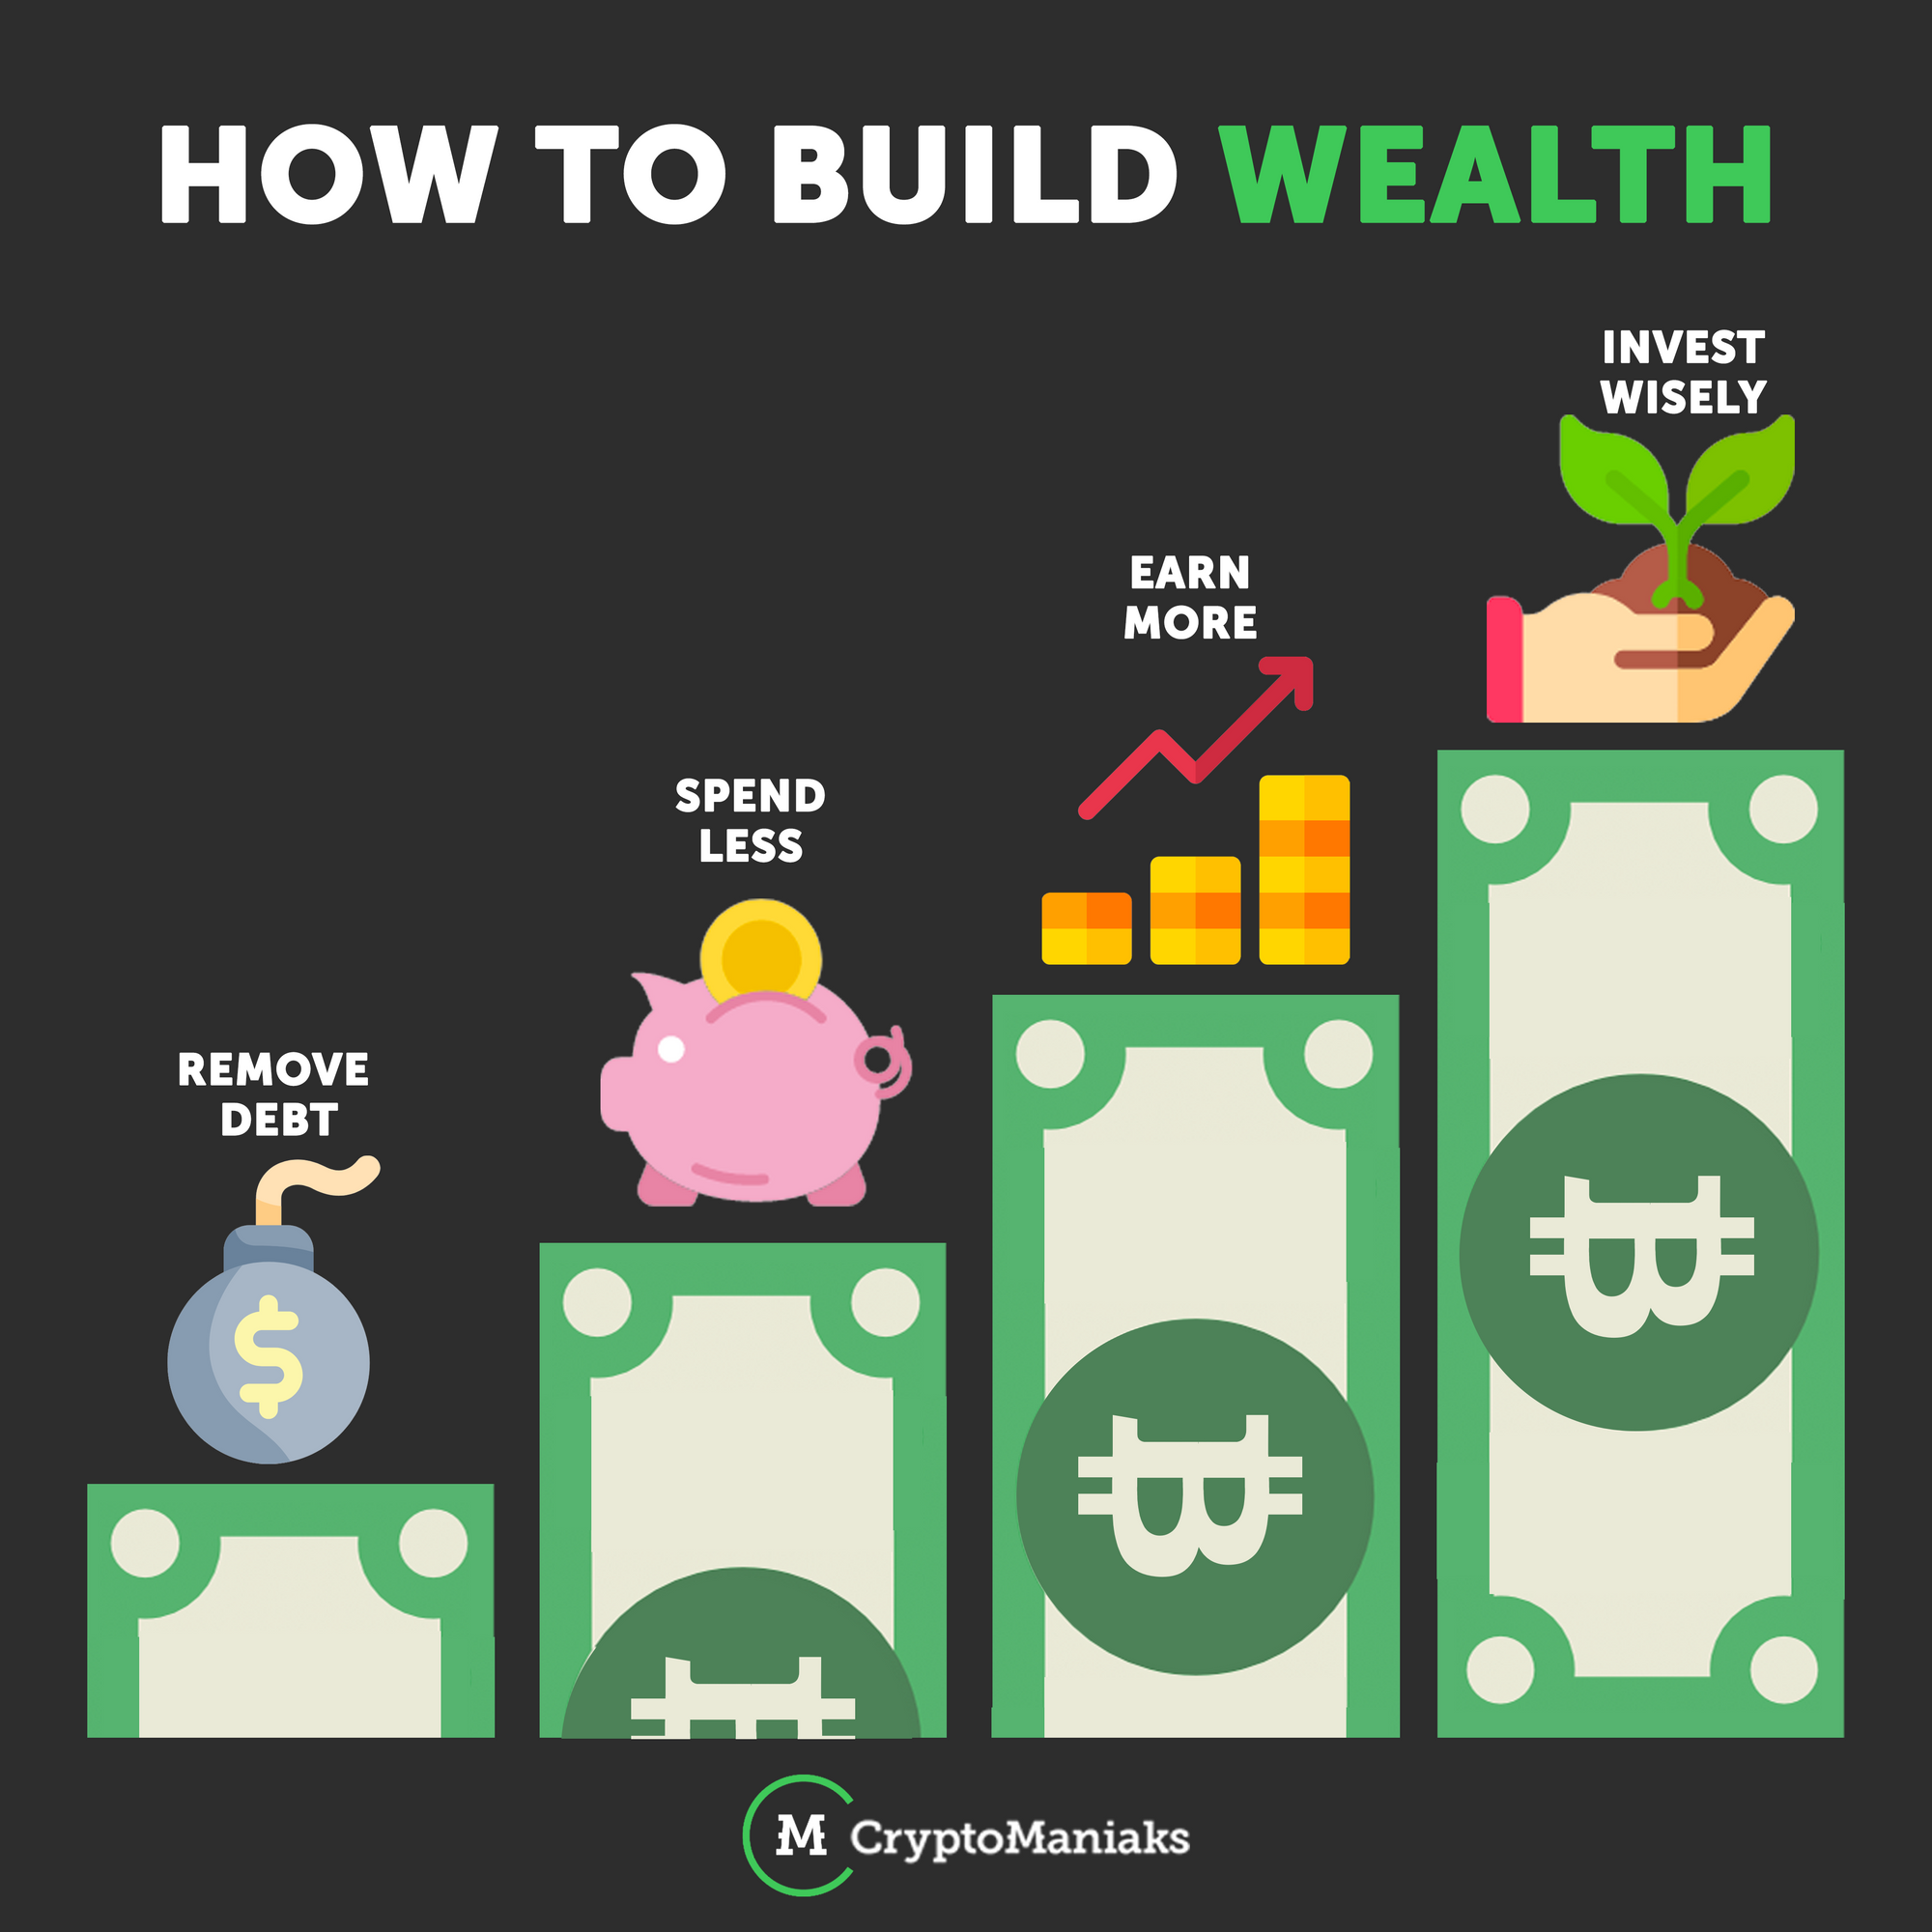 Building WEALTH is super important. Bitcoin is a great way